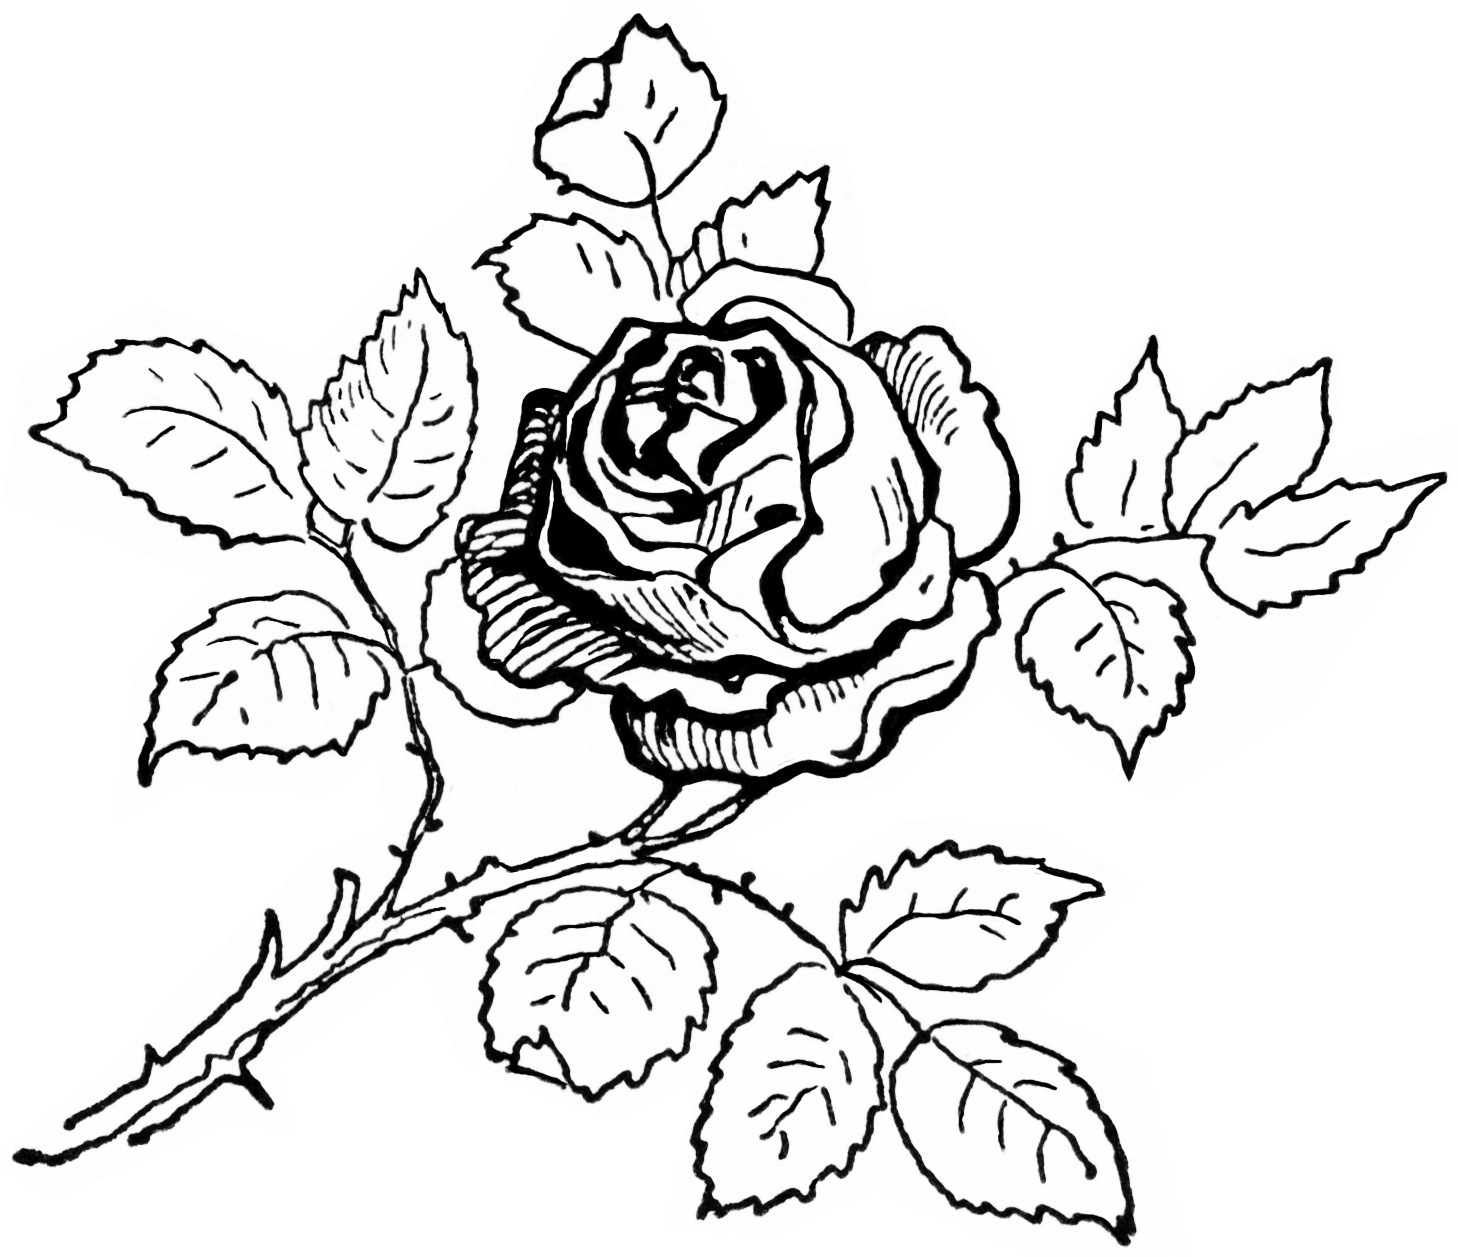 Rose Leaf Drawing At Getdrawings